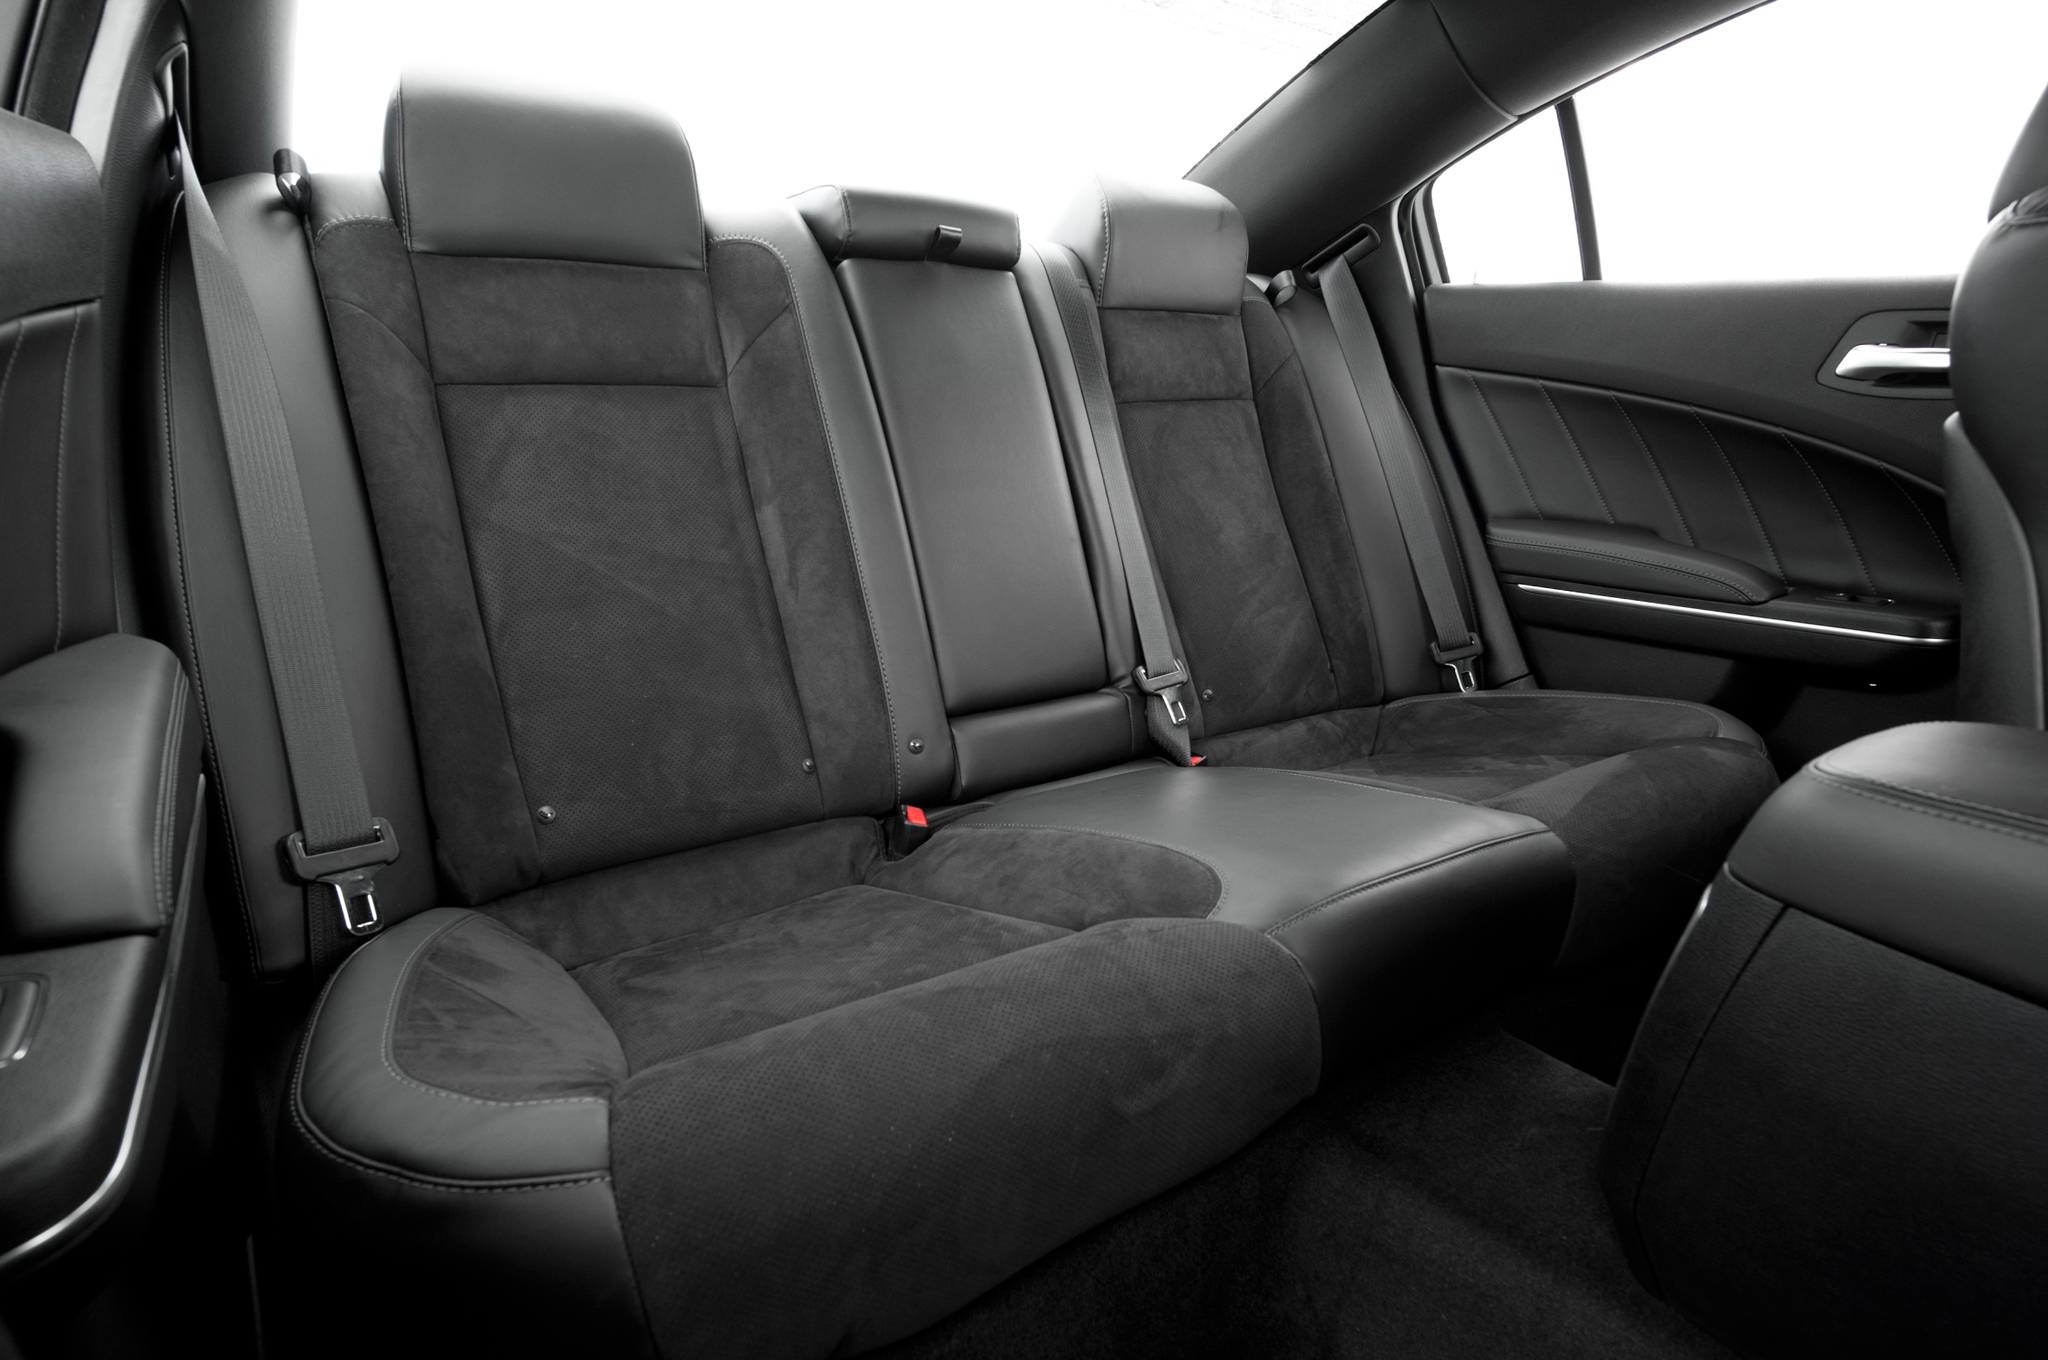 2015 Dodge Charger Rear Interior Seats (Photo 39 of 39)